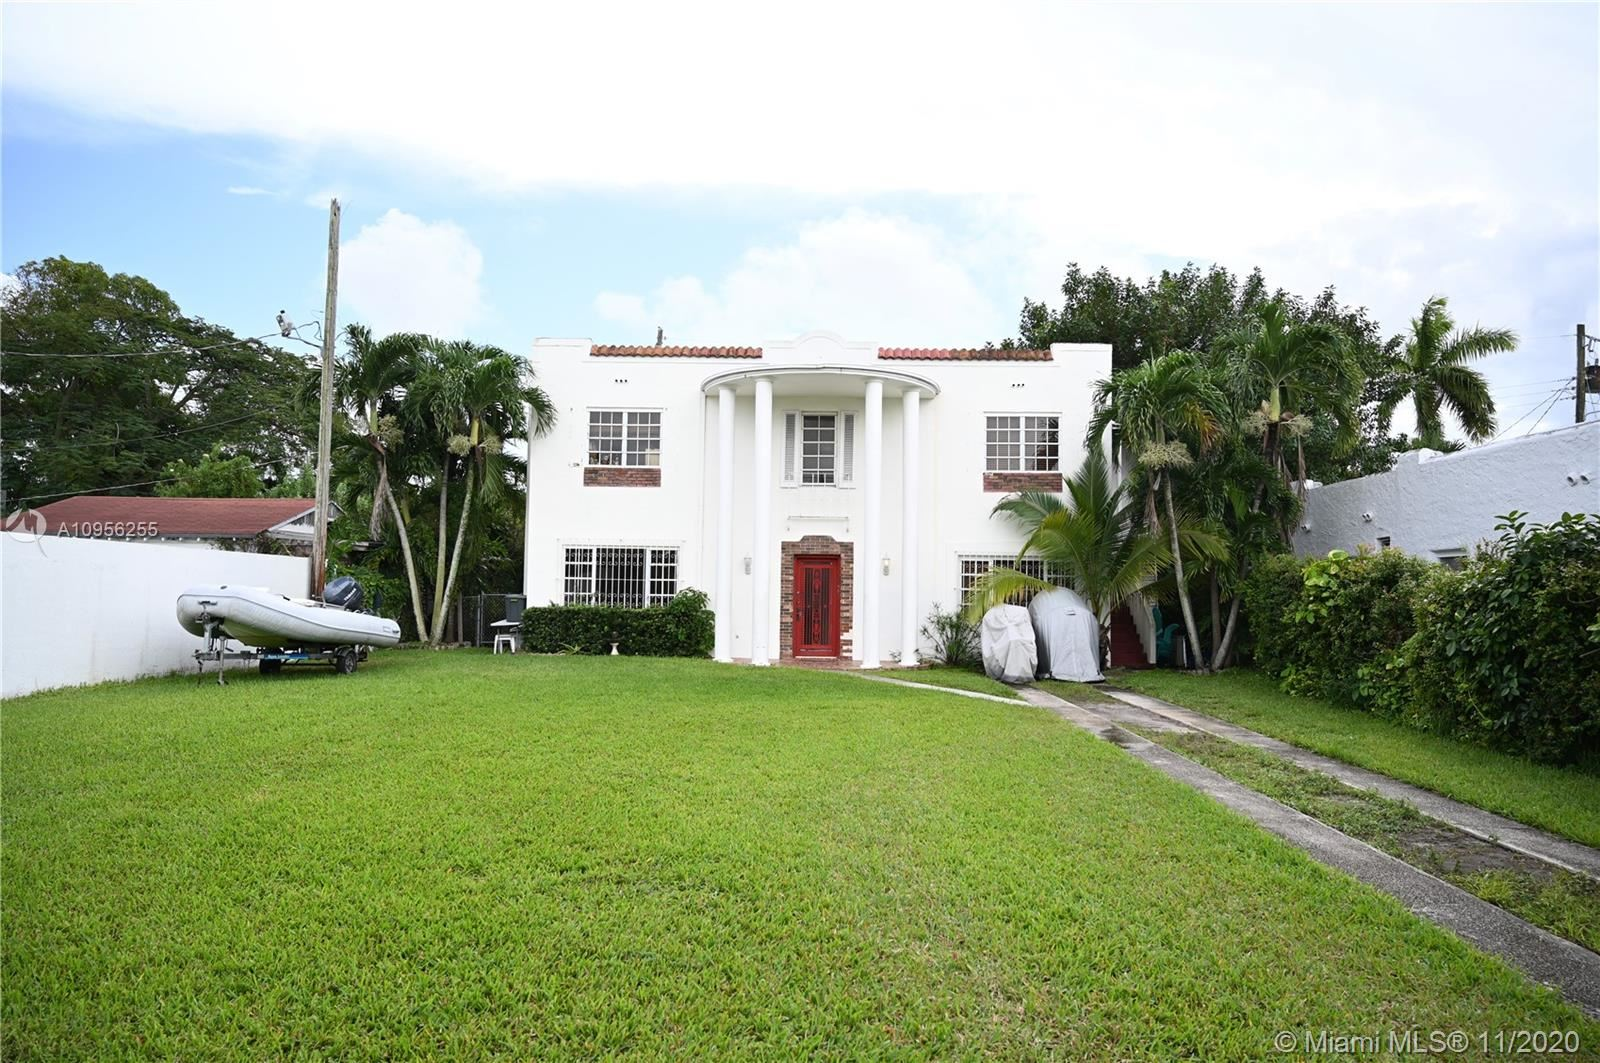 2356 SW 12th St, Miami, FL 33135 - #: A10956255